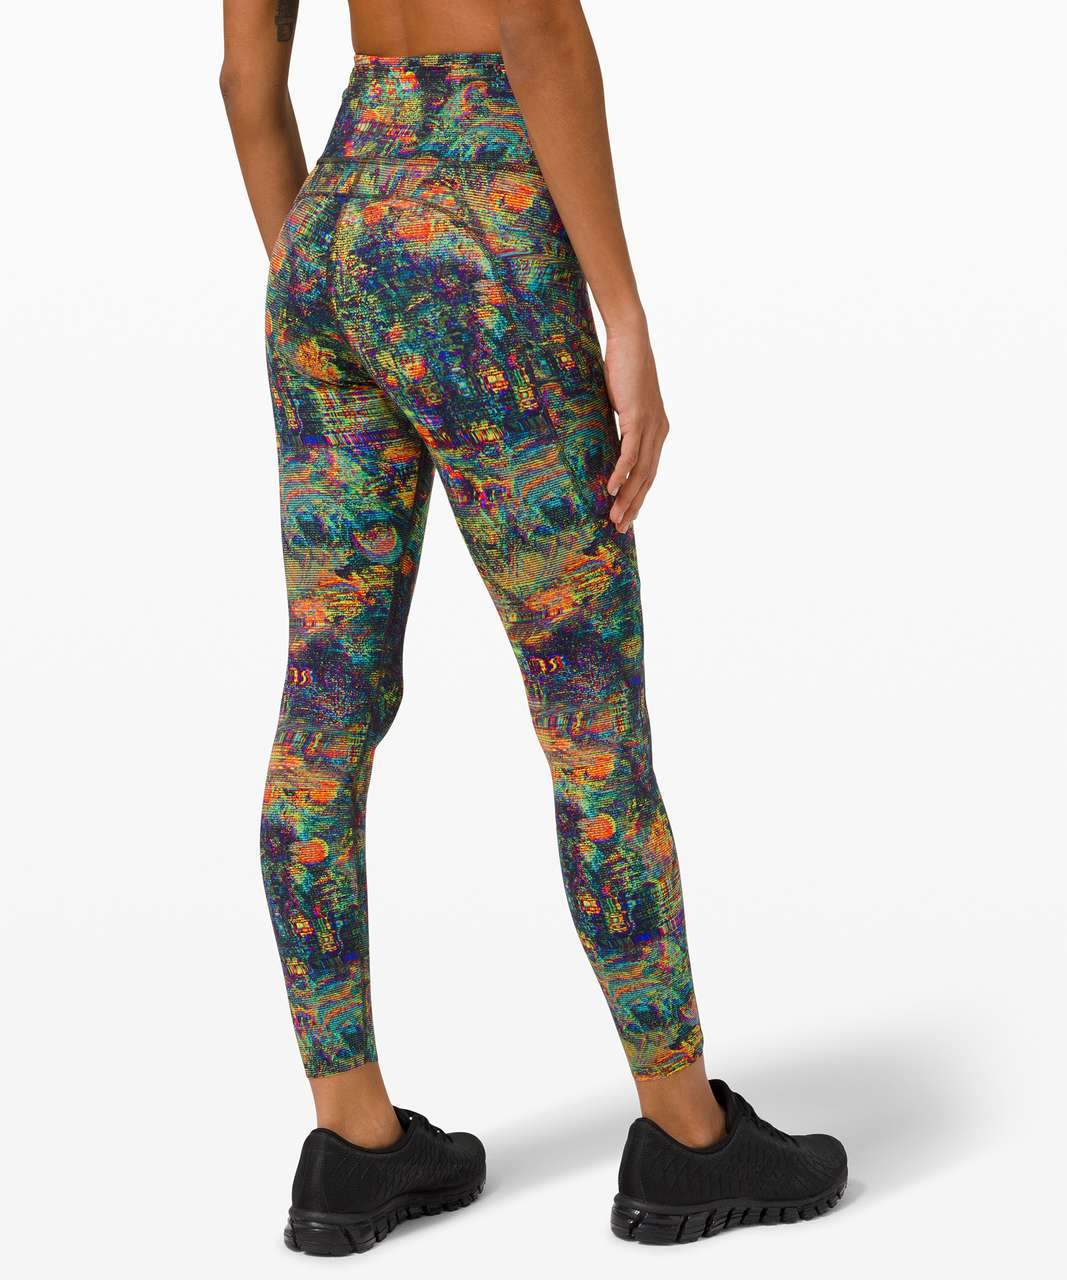 """Lululemon Fast and Free Tight 25"""" *Non-Reflective Nulux - Glitch Tapestry Starlight Multi"""